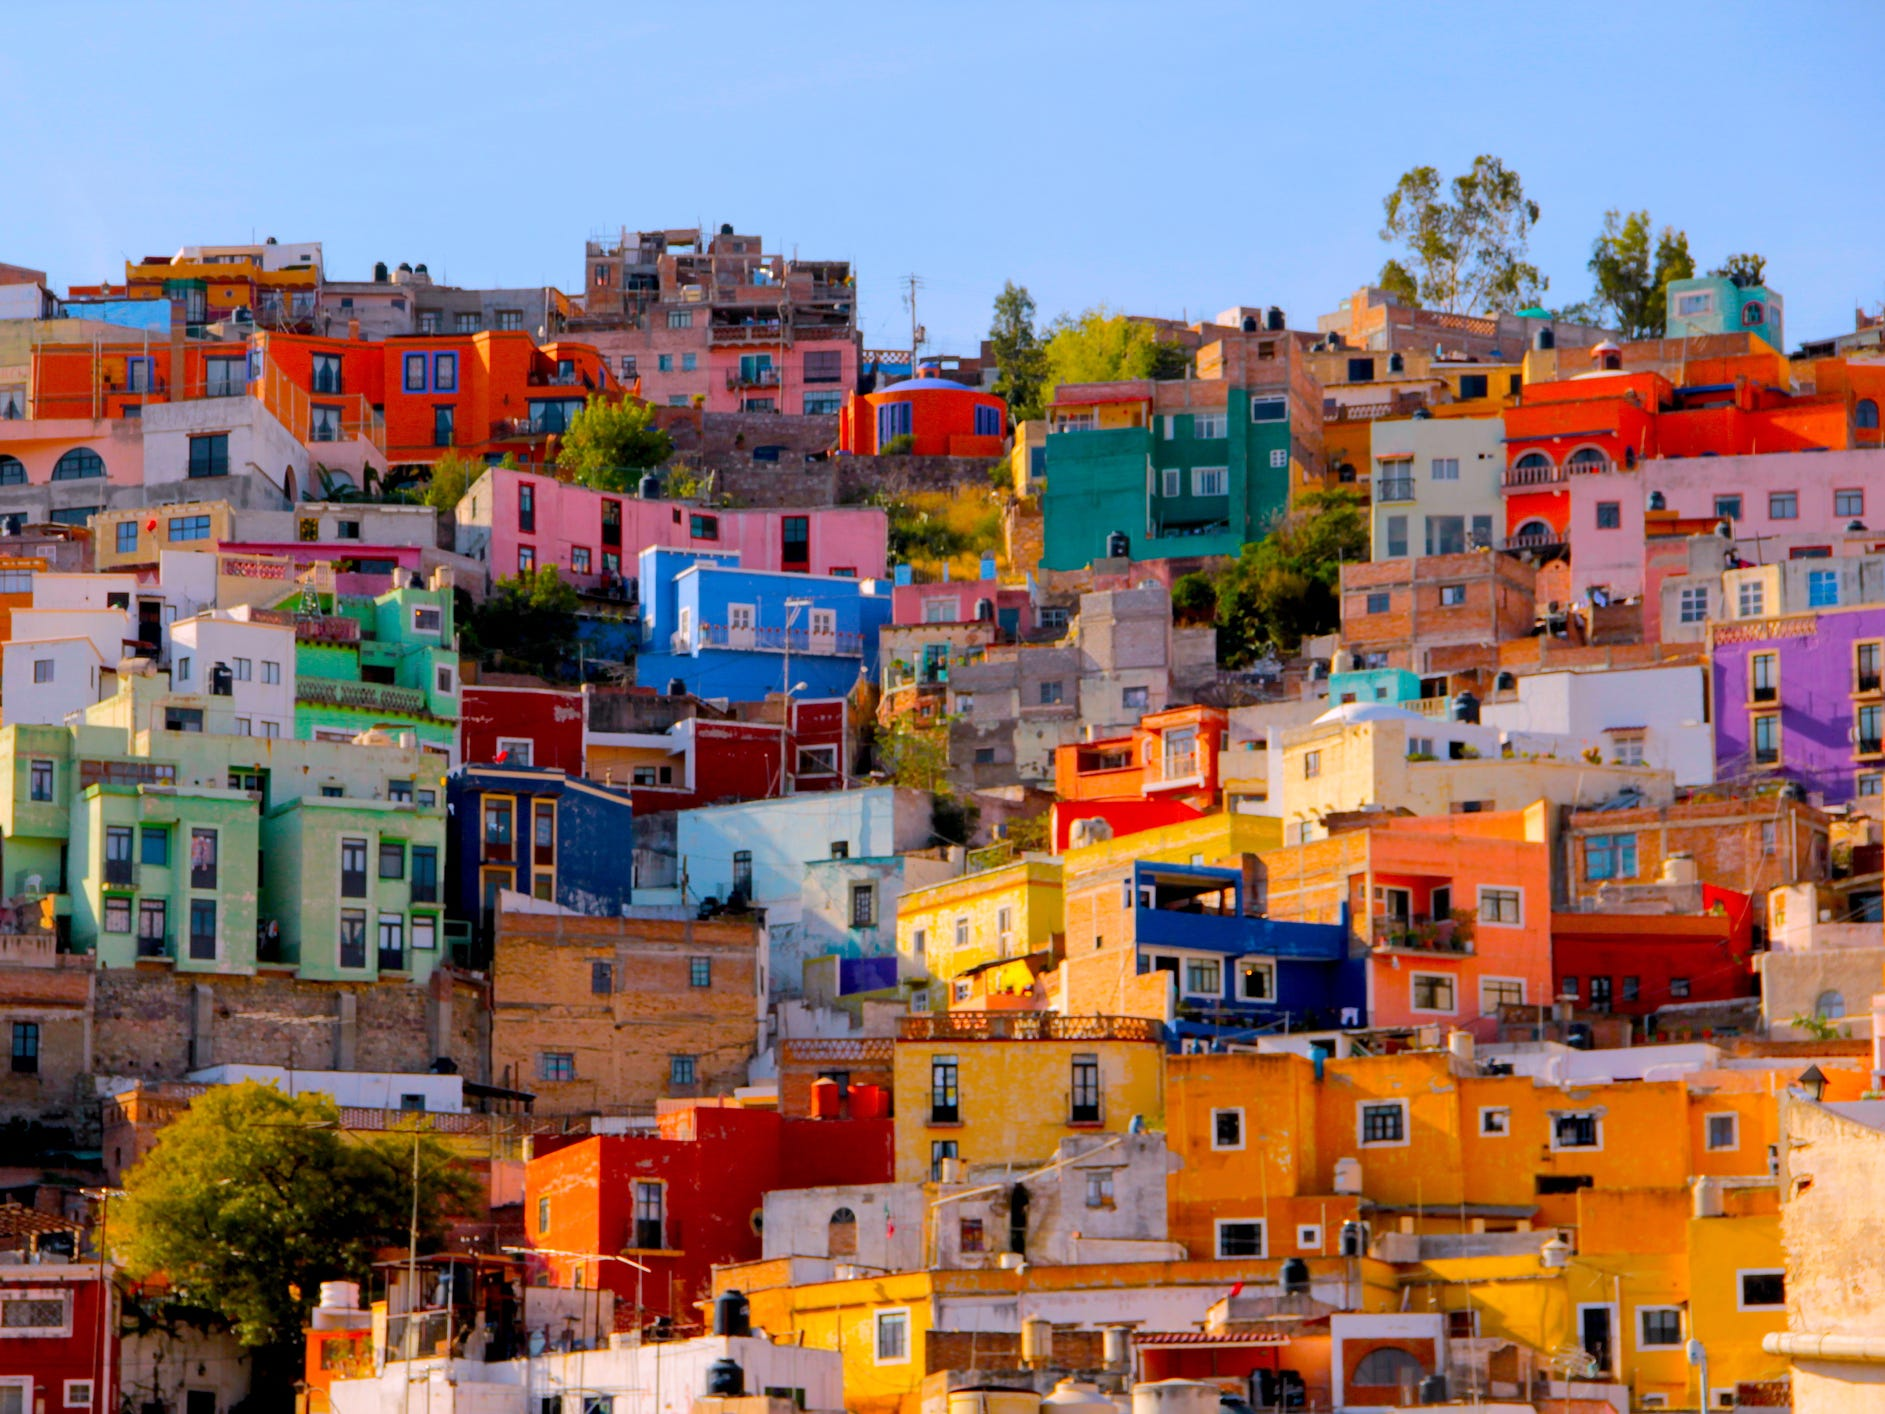 Guanajuato, Mexico: Mexico has no shortage of colorful cities, but Guanajuato is one of the most charming.